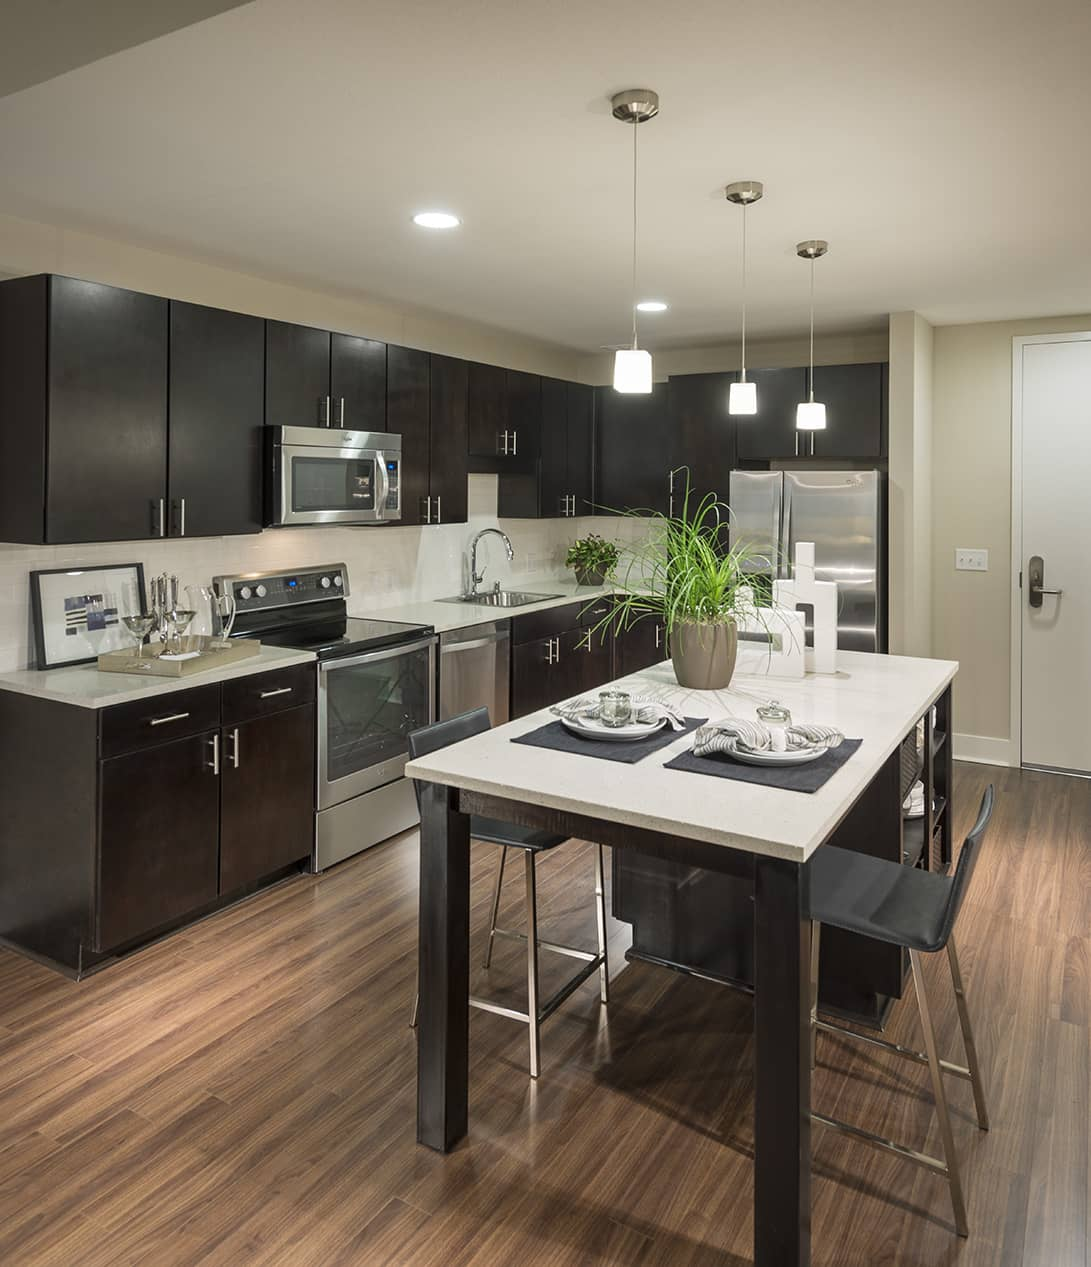 Apartment Search Bay Area: Photo Gallery For Channel Mission Bay